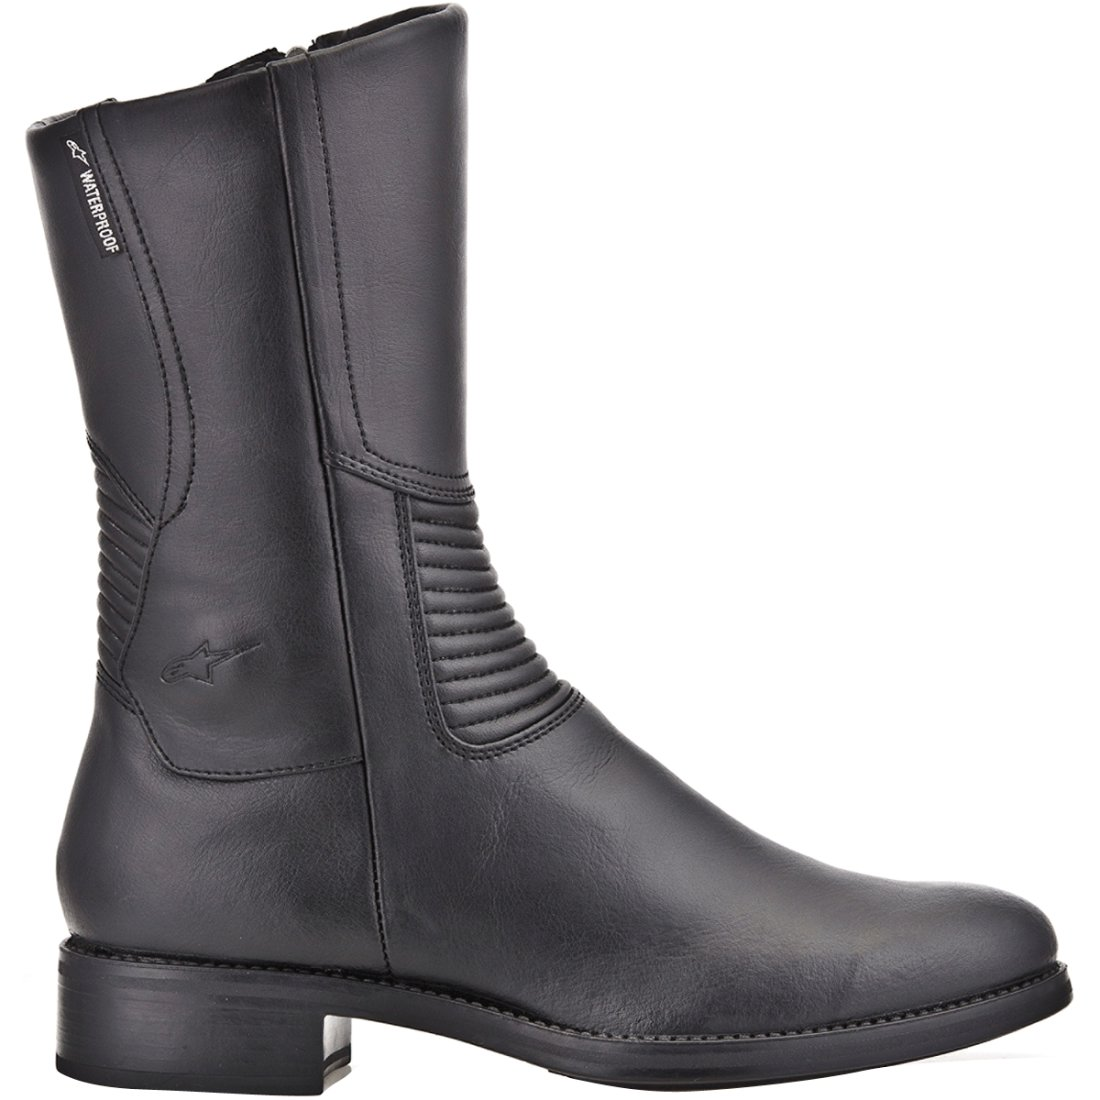 bottes alpinestars stella vika waterproof lady black motocard. Black Bedroom Furniture Sets. Home Design Ideas